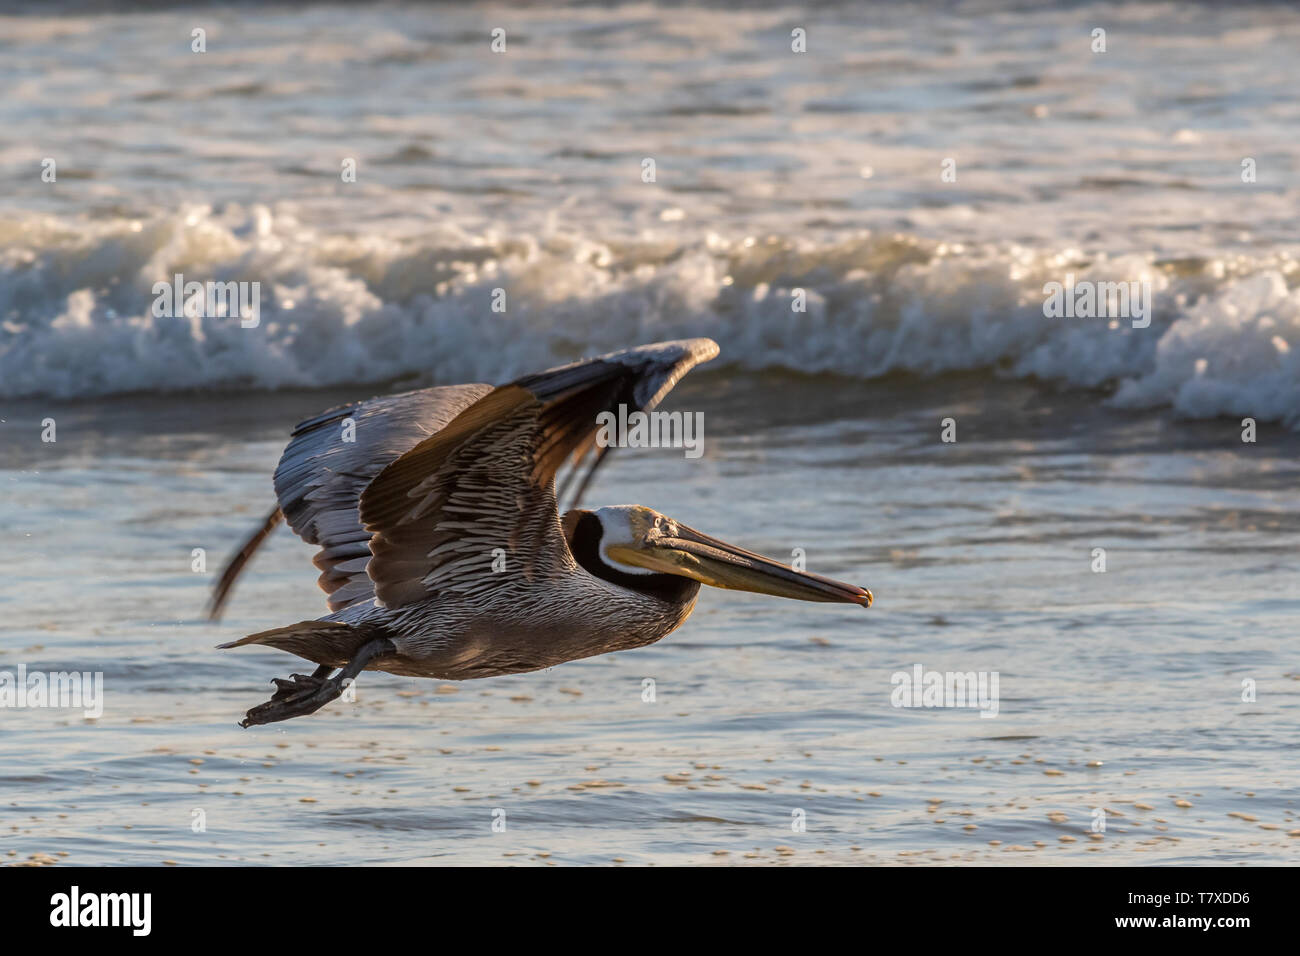 Brown pelican (Pelecanus occidentalis) flying low over a beach with waves breaking in background in Baja Californa Sur, Mexico. Stock Photo